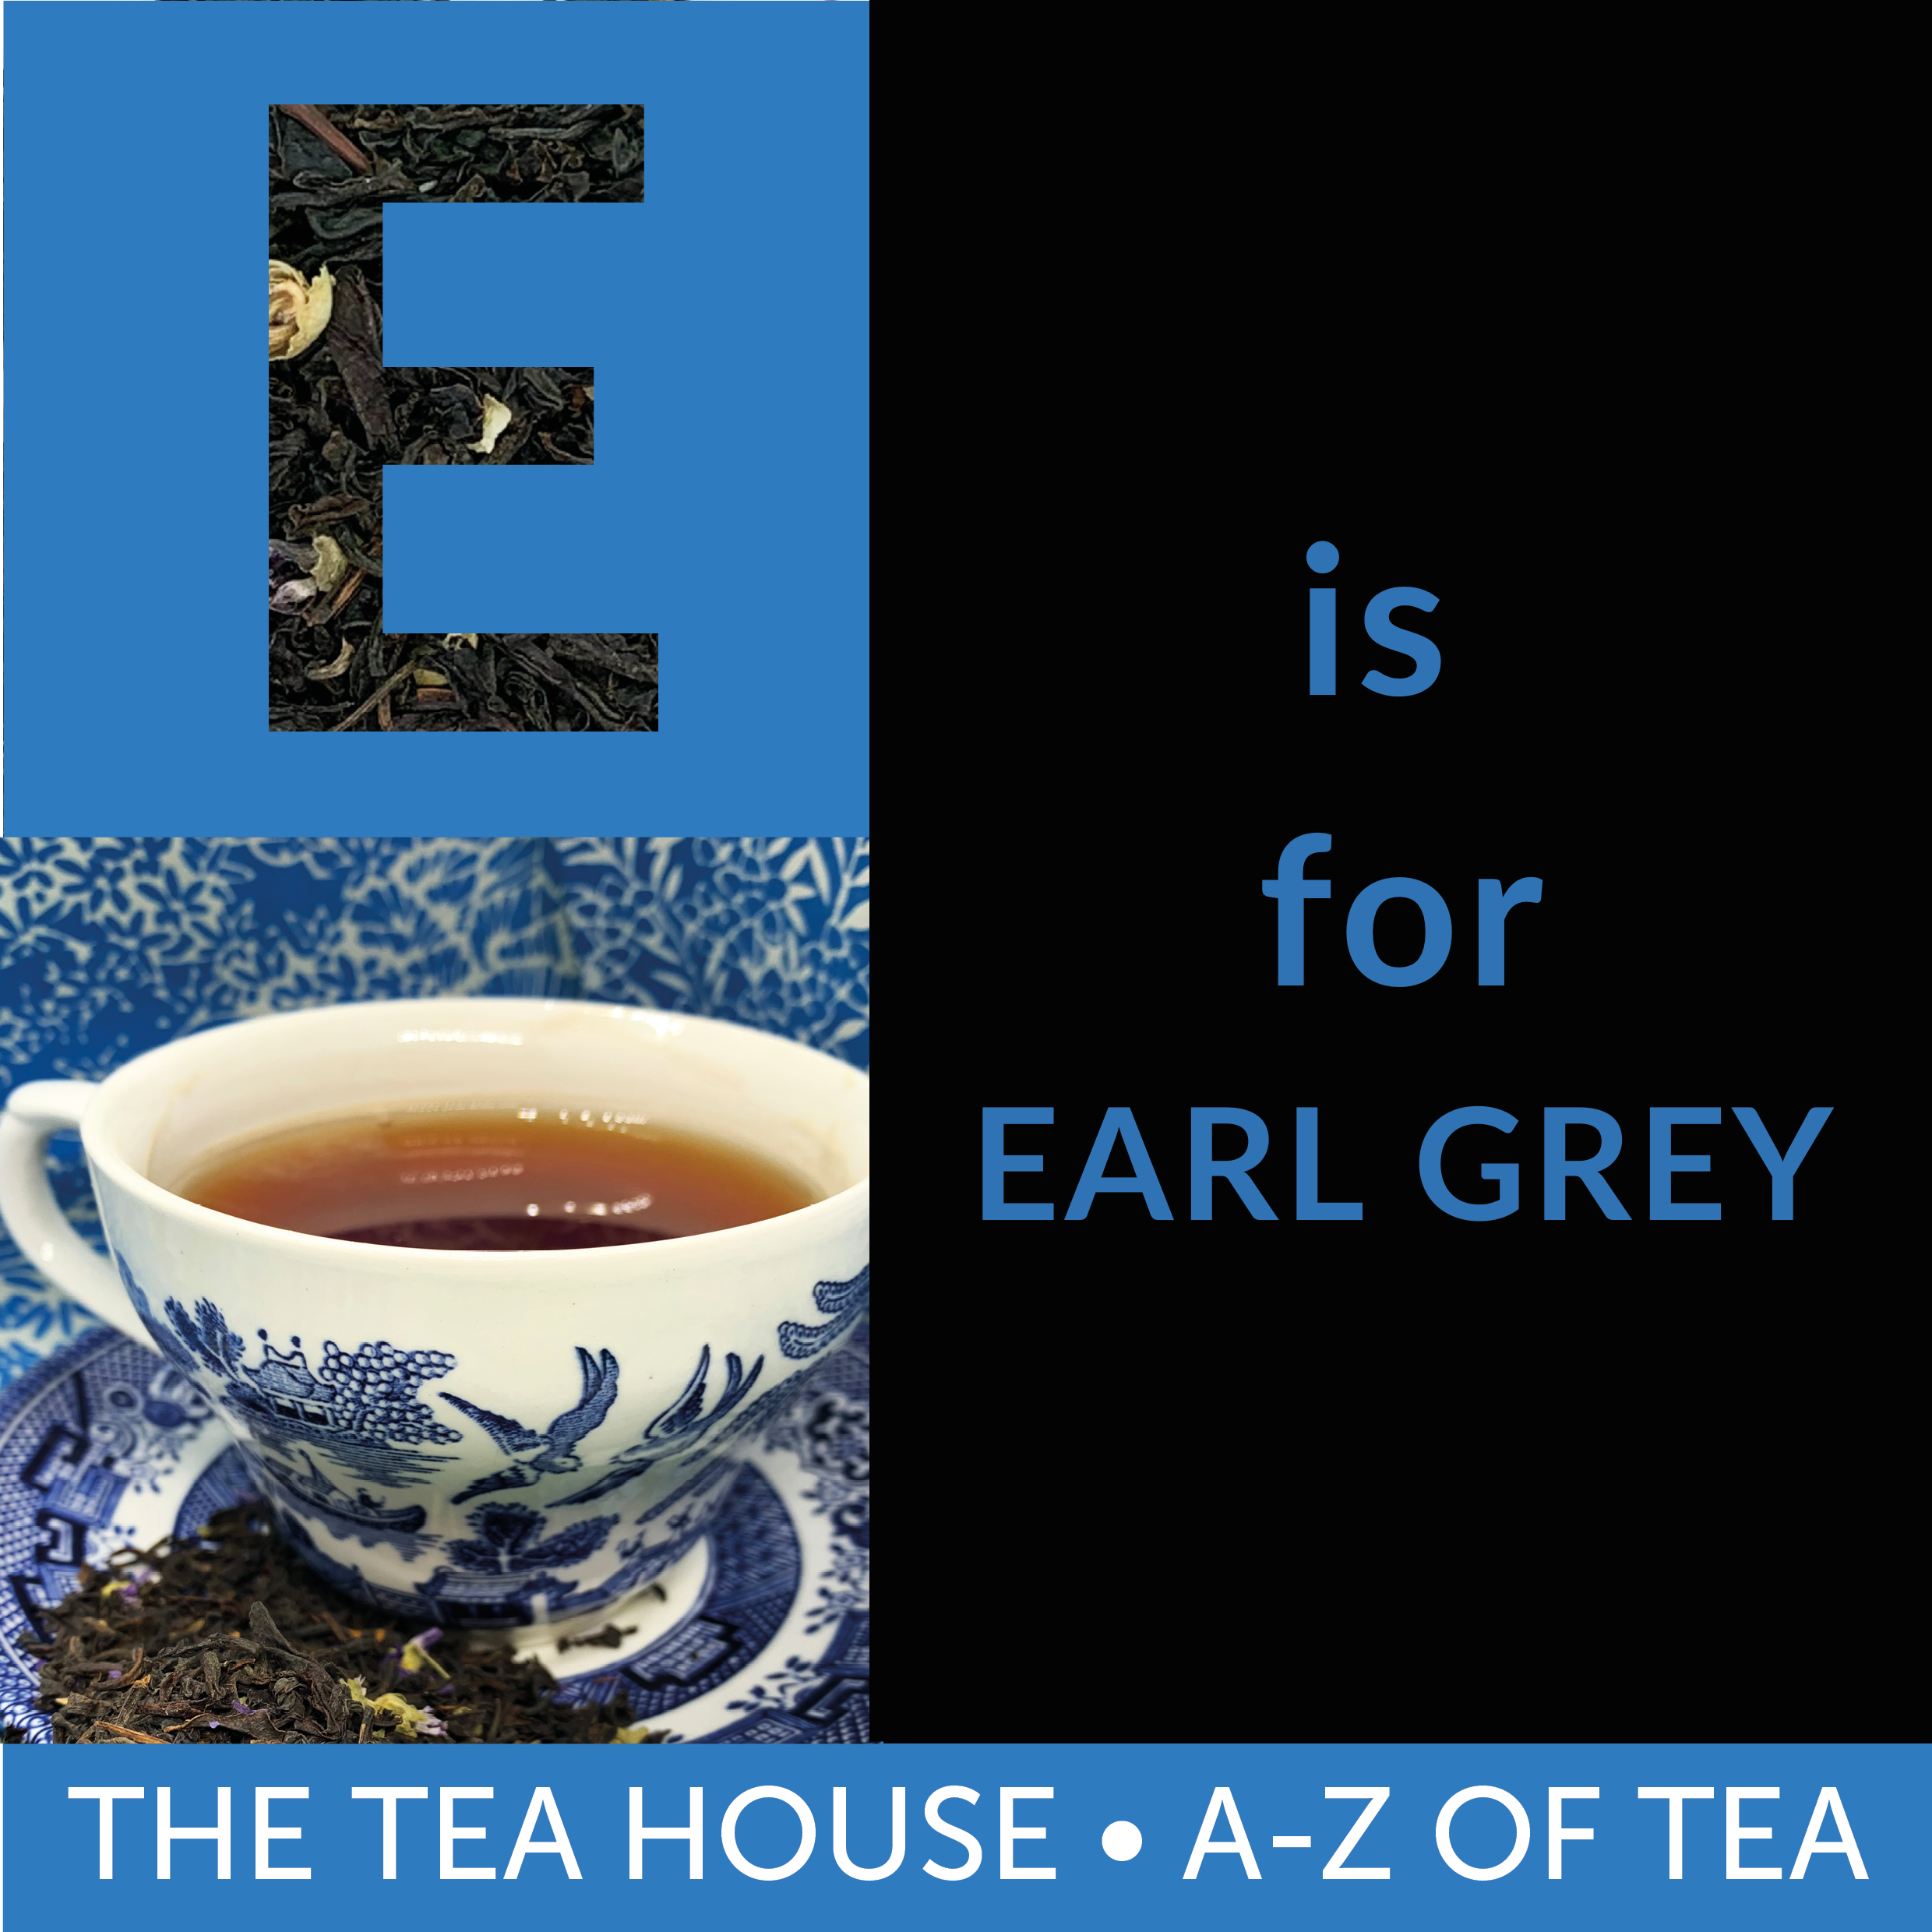 E is for Earl Grey